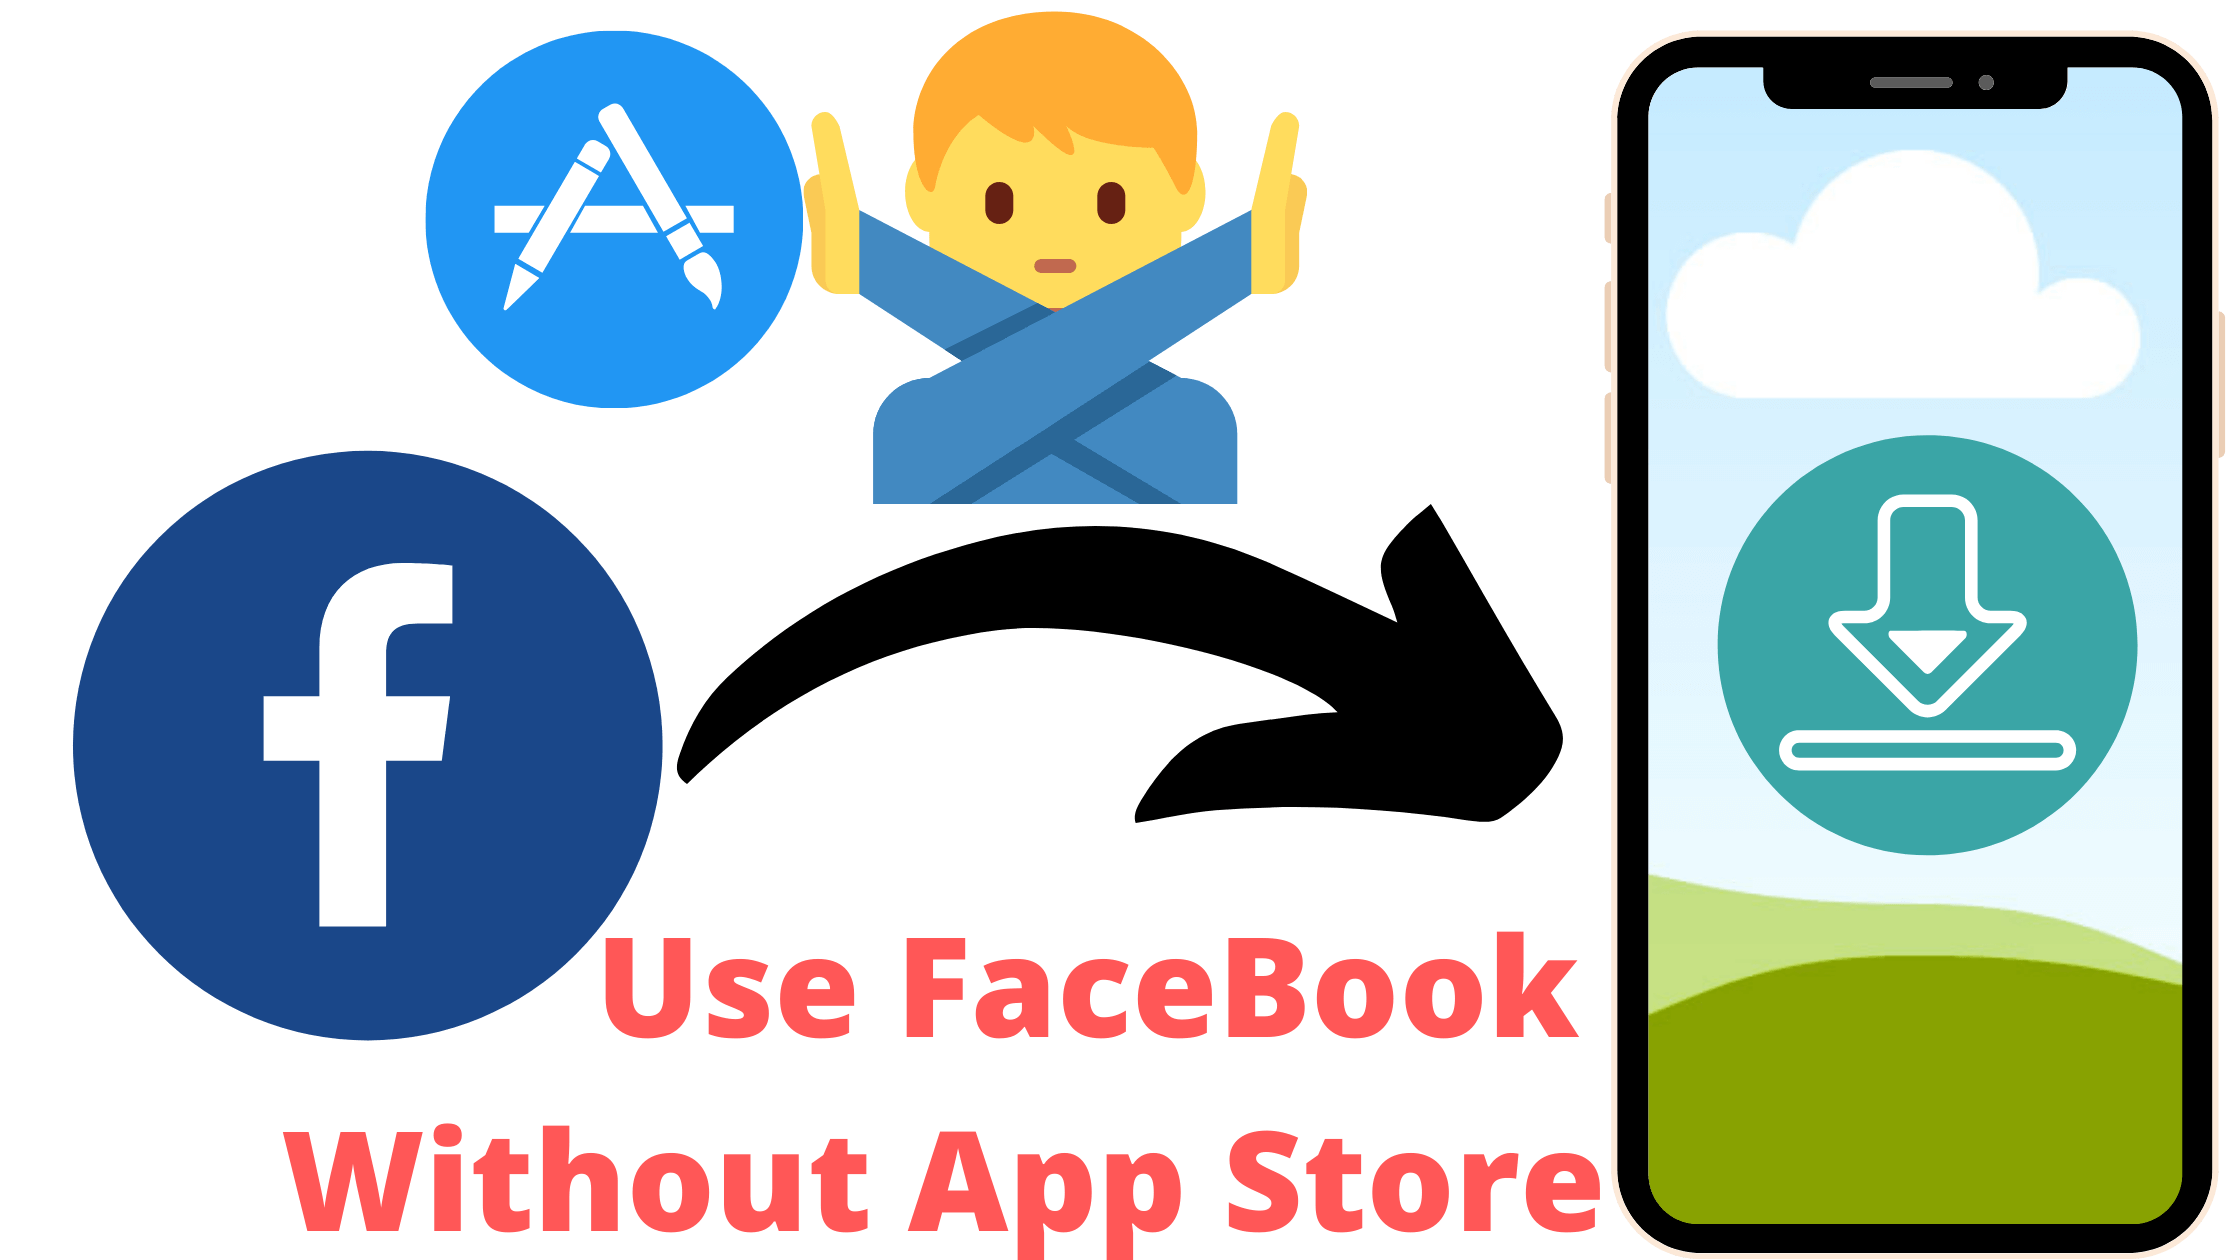 Use FaceBook Without App Store